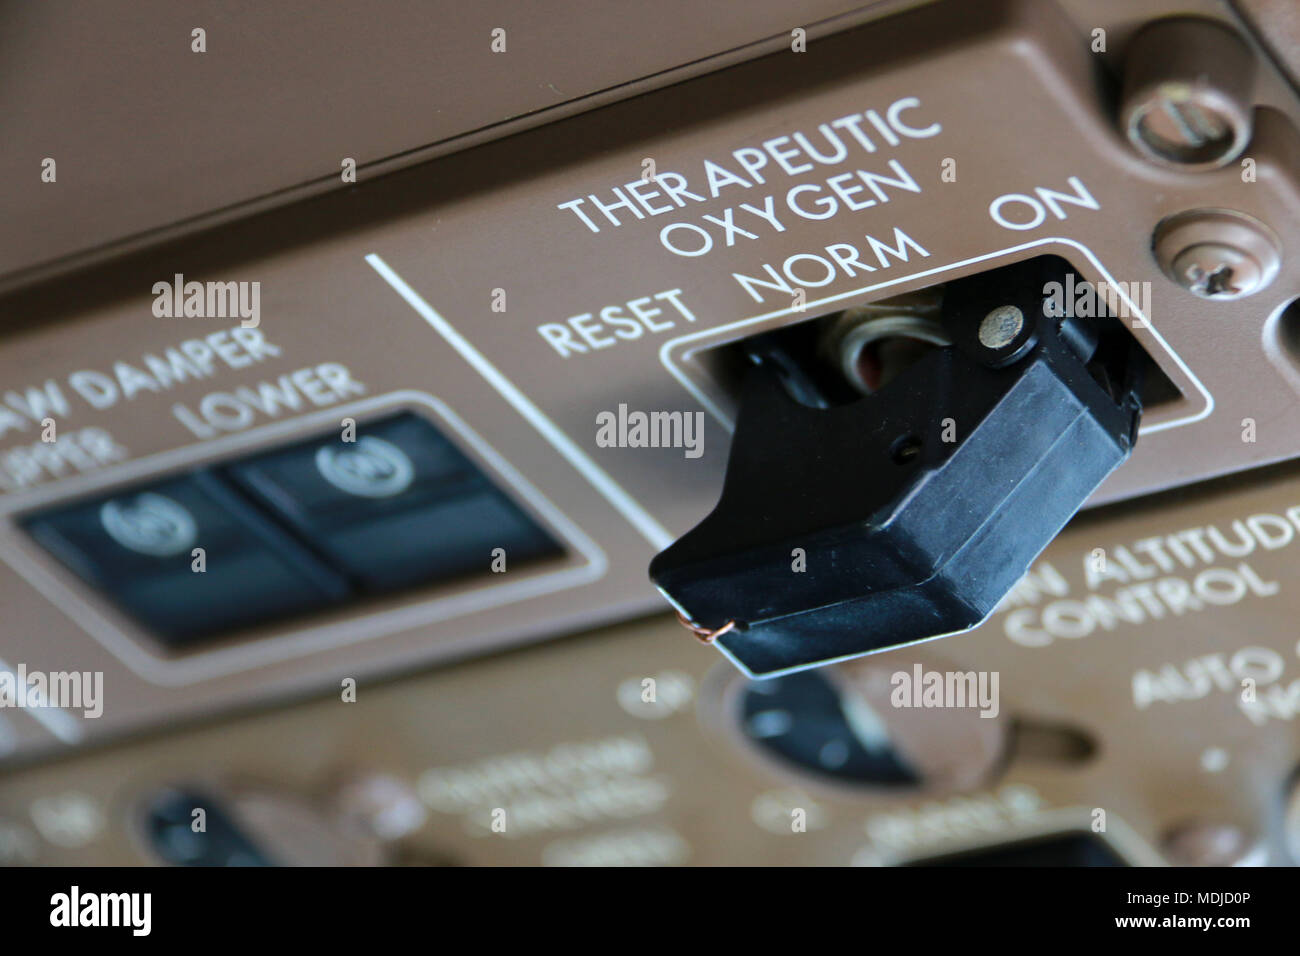 Therapeutic Oxygen System Control on a Flight Deck of a Boeing 747-400 - Stock Image